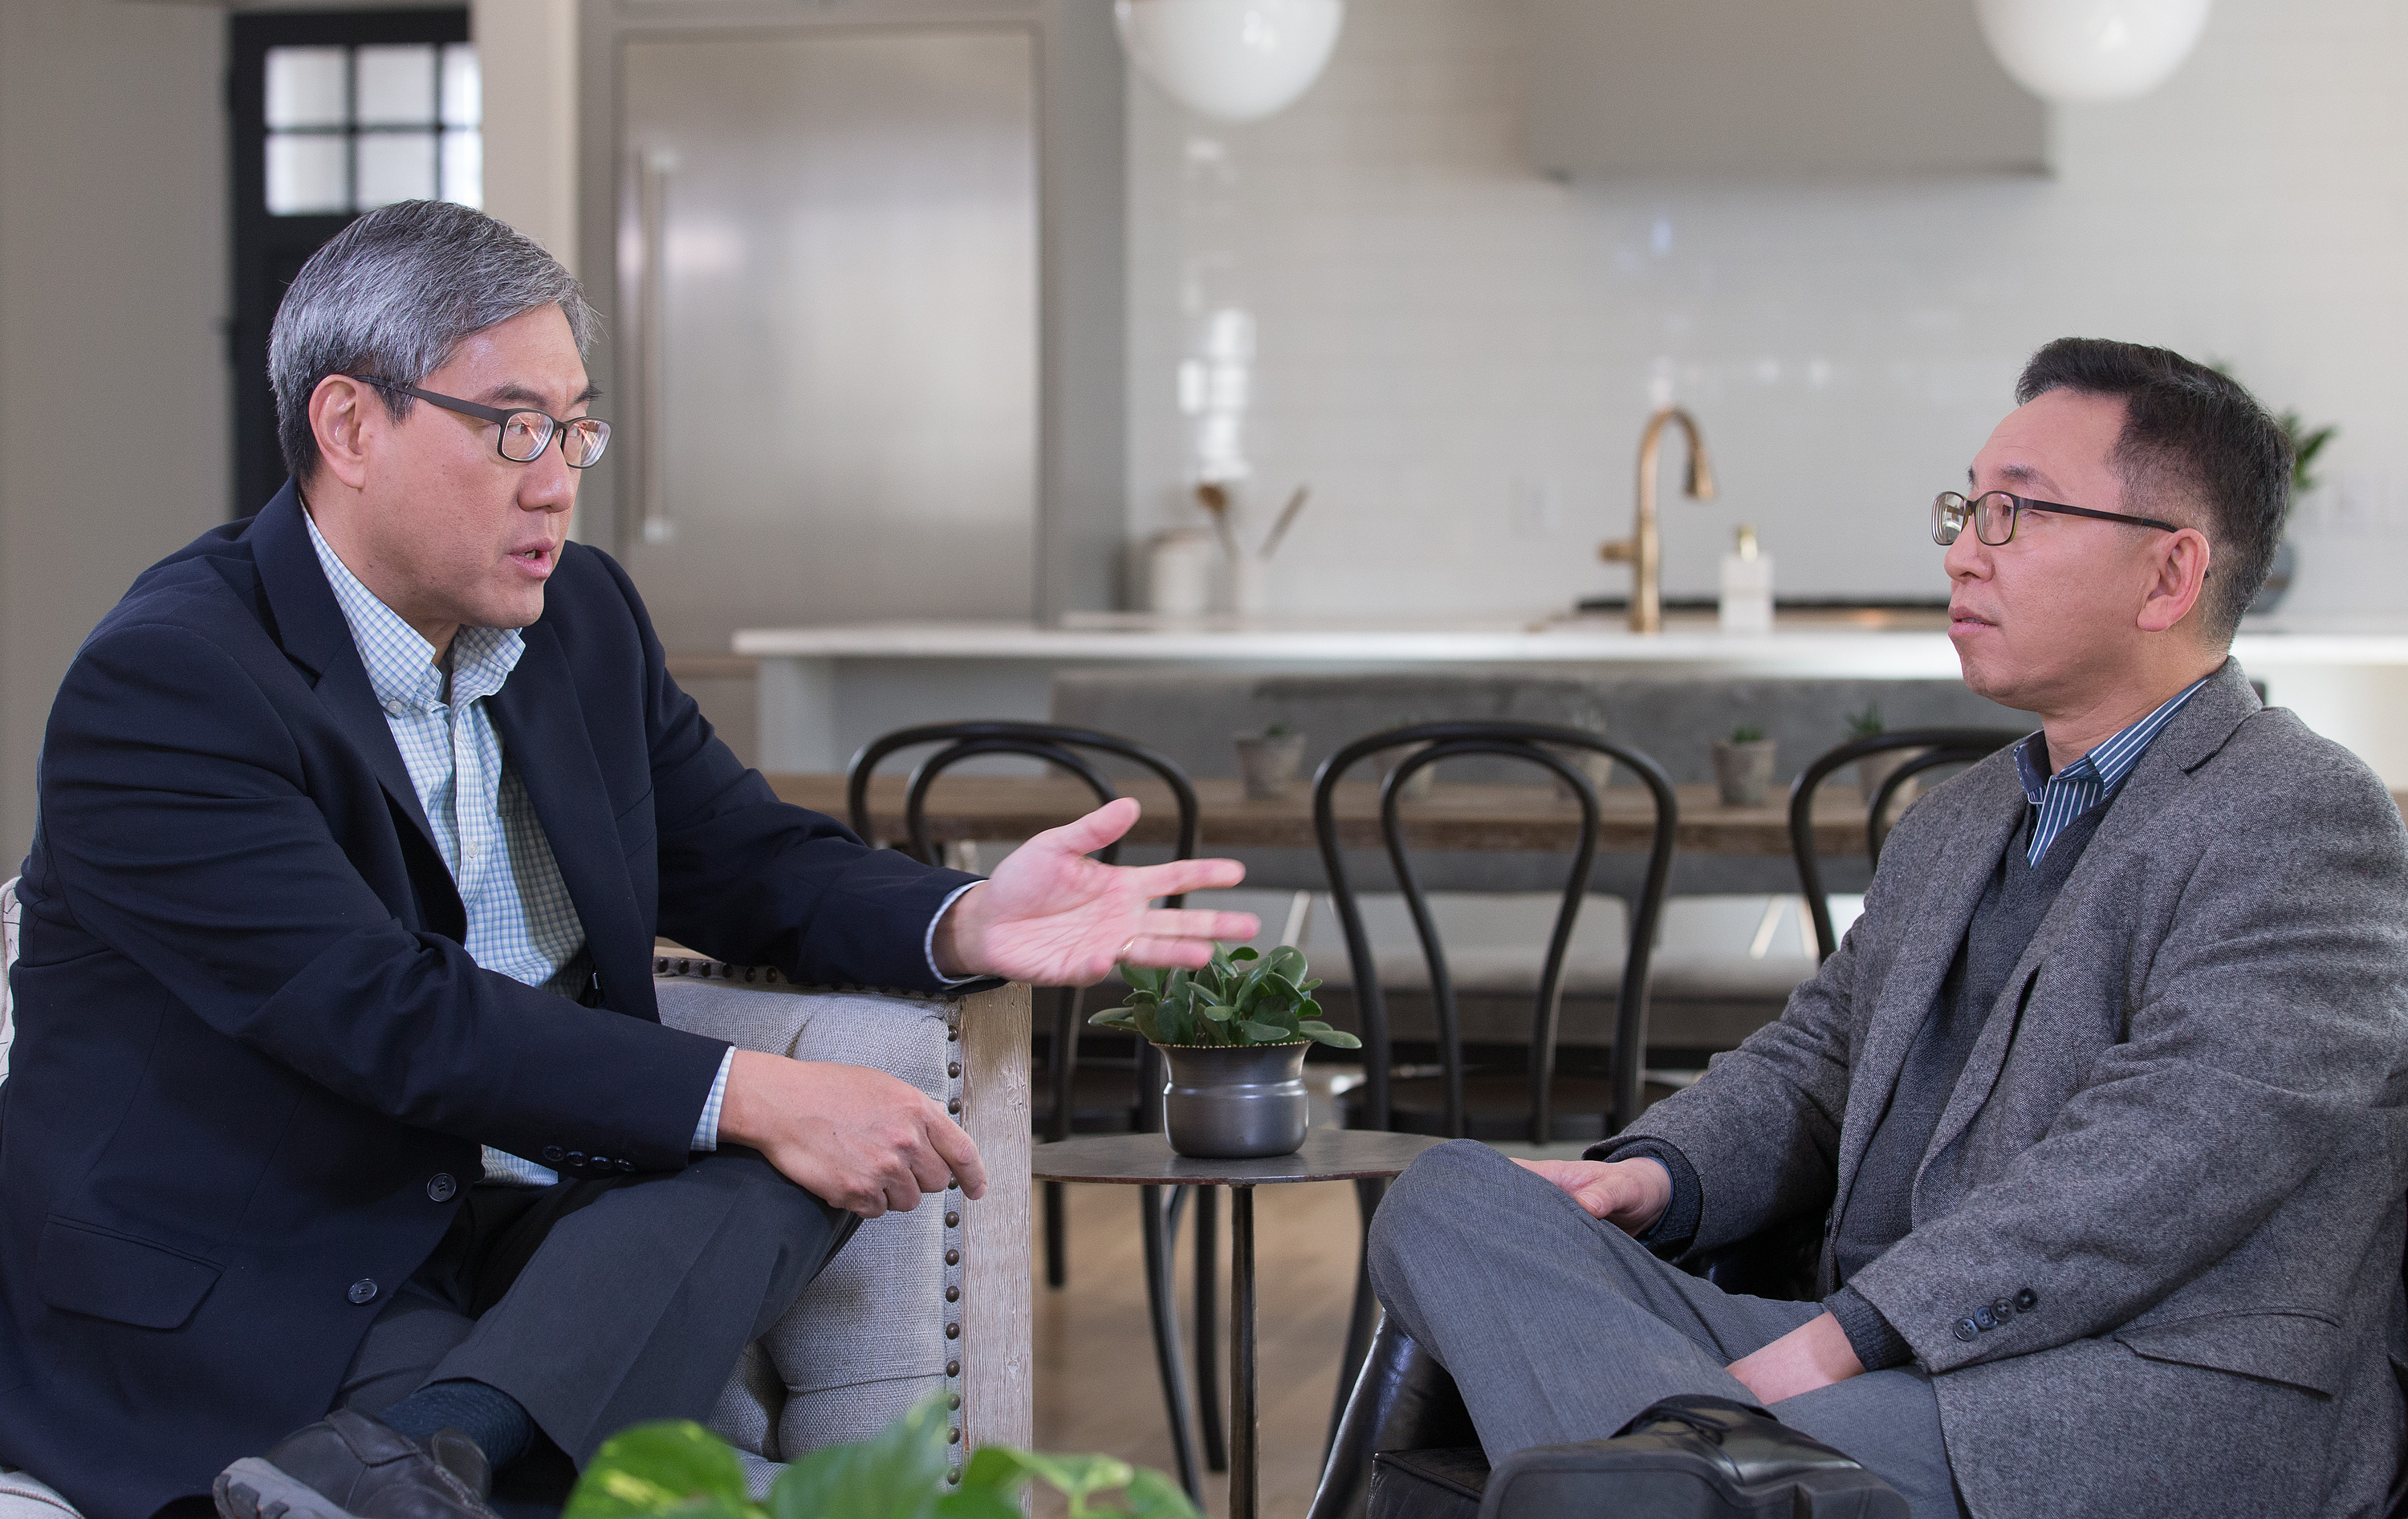 The Revs. Kevin Park (left) and Kil Jae Park share a conversation on offering pastoral care when congregants have differing views, part of the newest GCORR Vital Conversations series. Photo by Mike DuBose, UMNS.